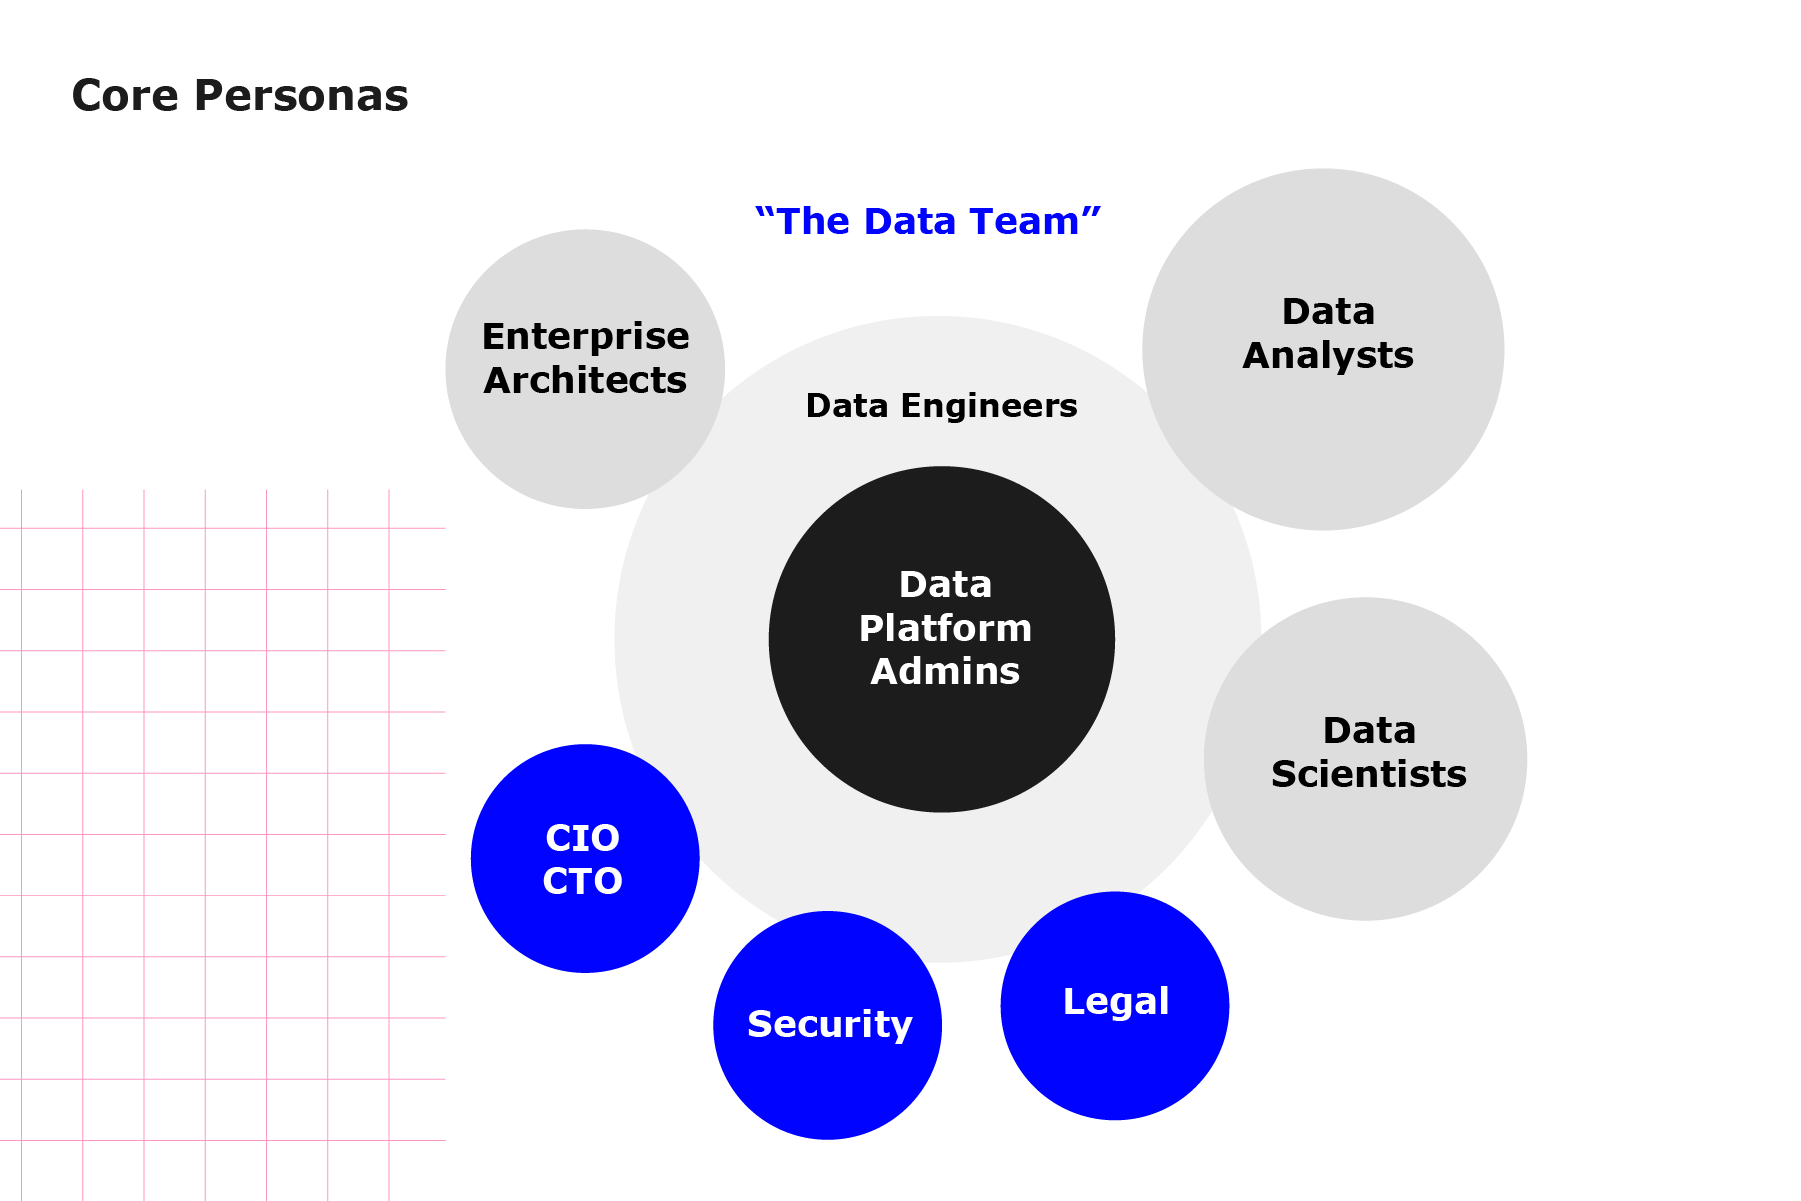 Diagrams shows the core personas (ie persons in a job profile) that are part of any data-centric business